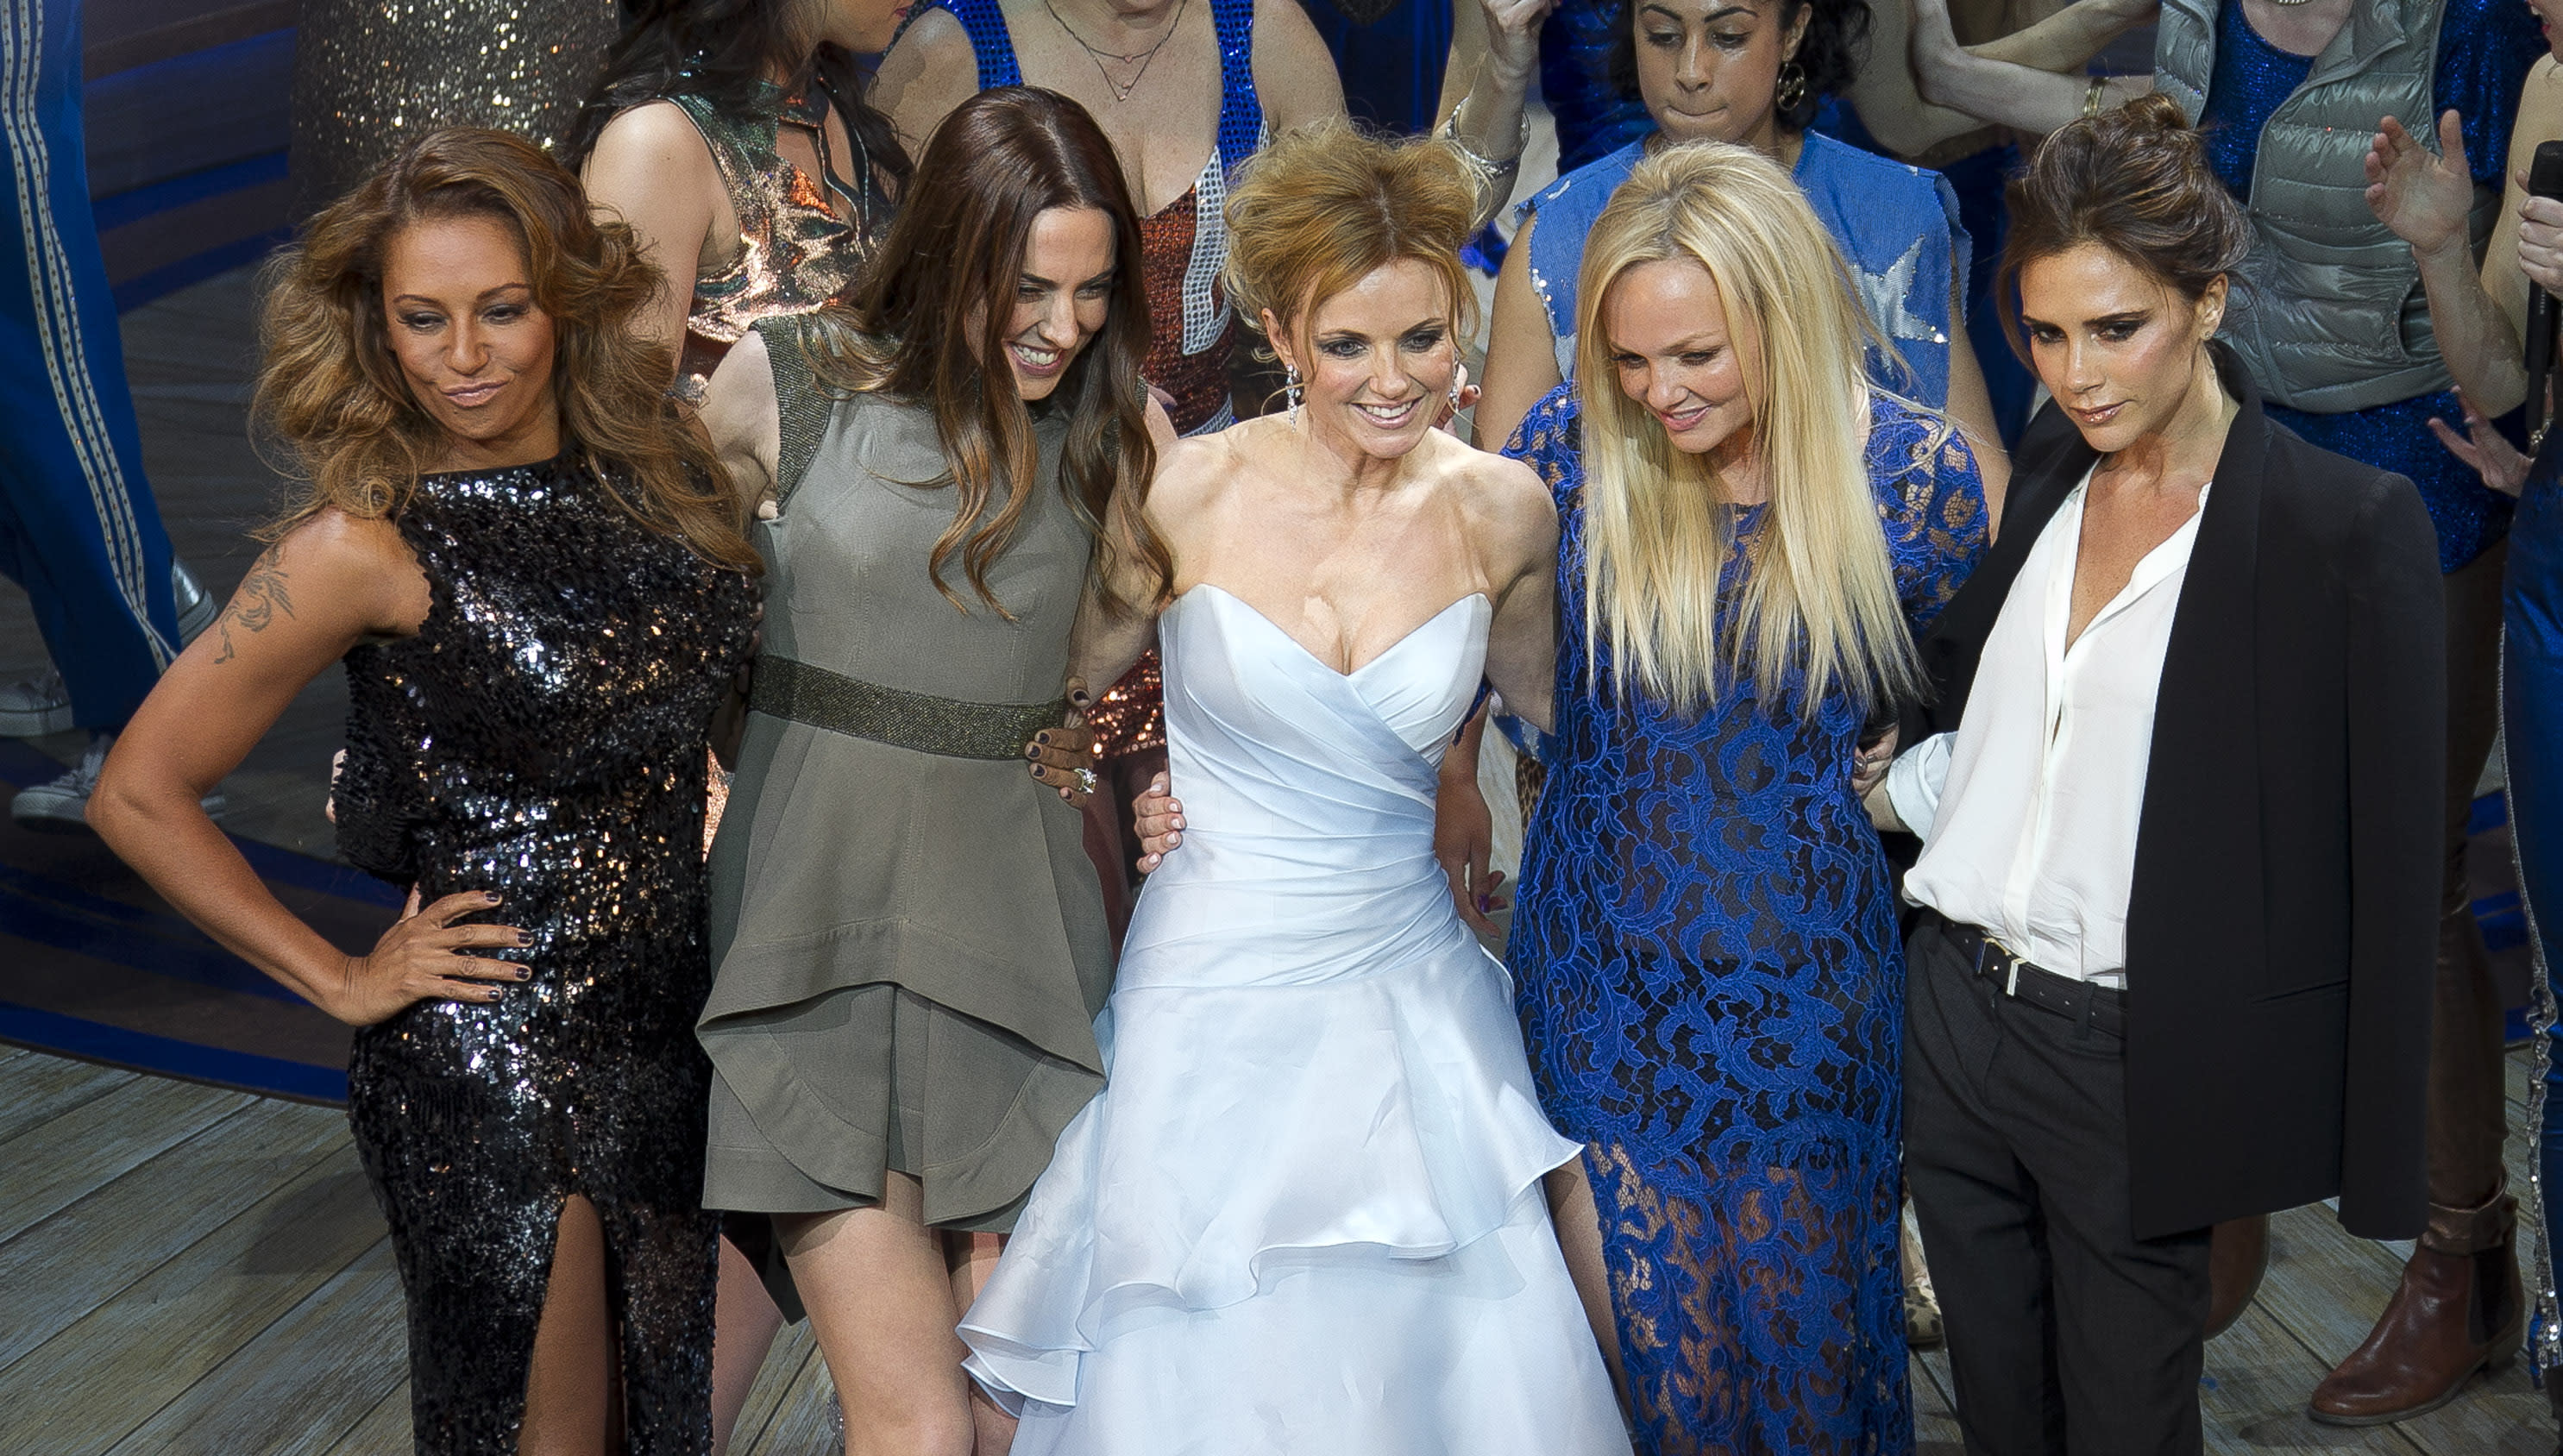 Victoria Beckham snubs Spice Girls Wembley gigs but A-Lister Emma Stone is there